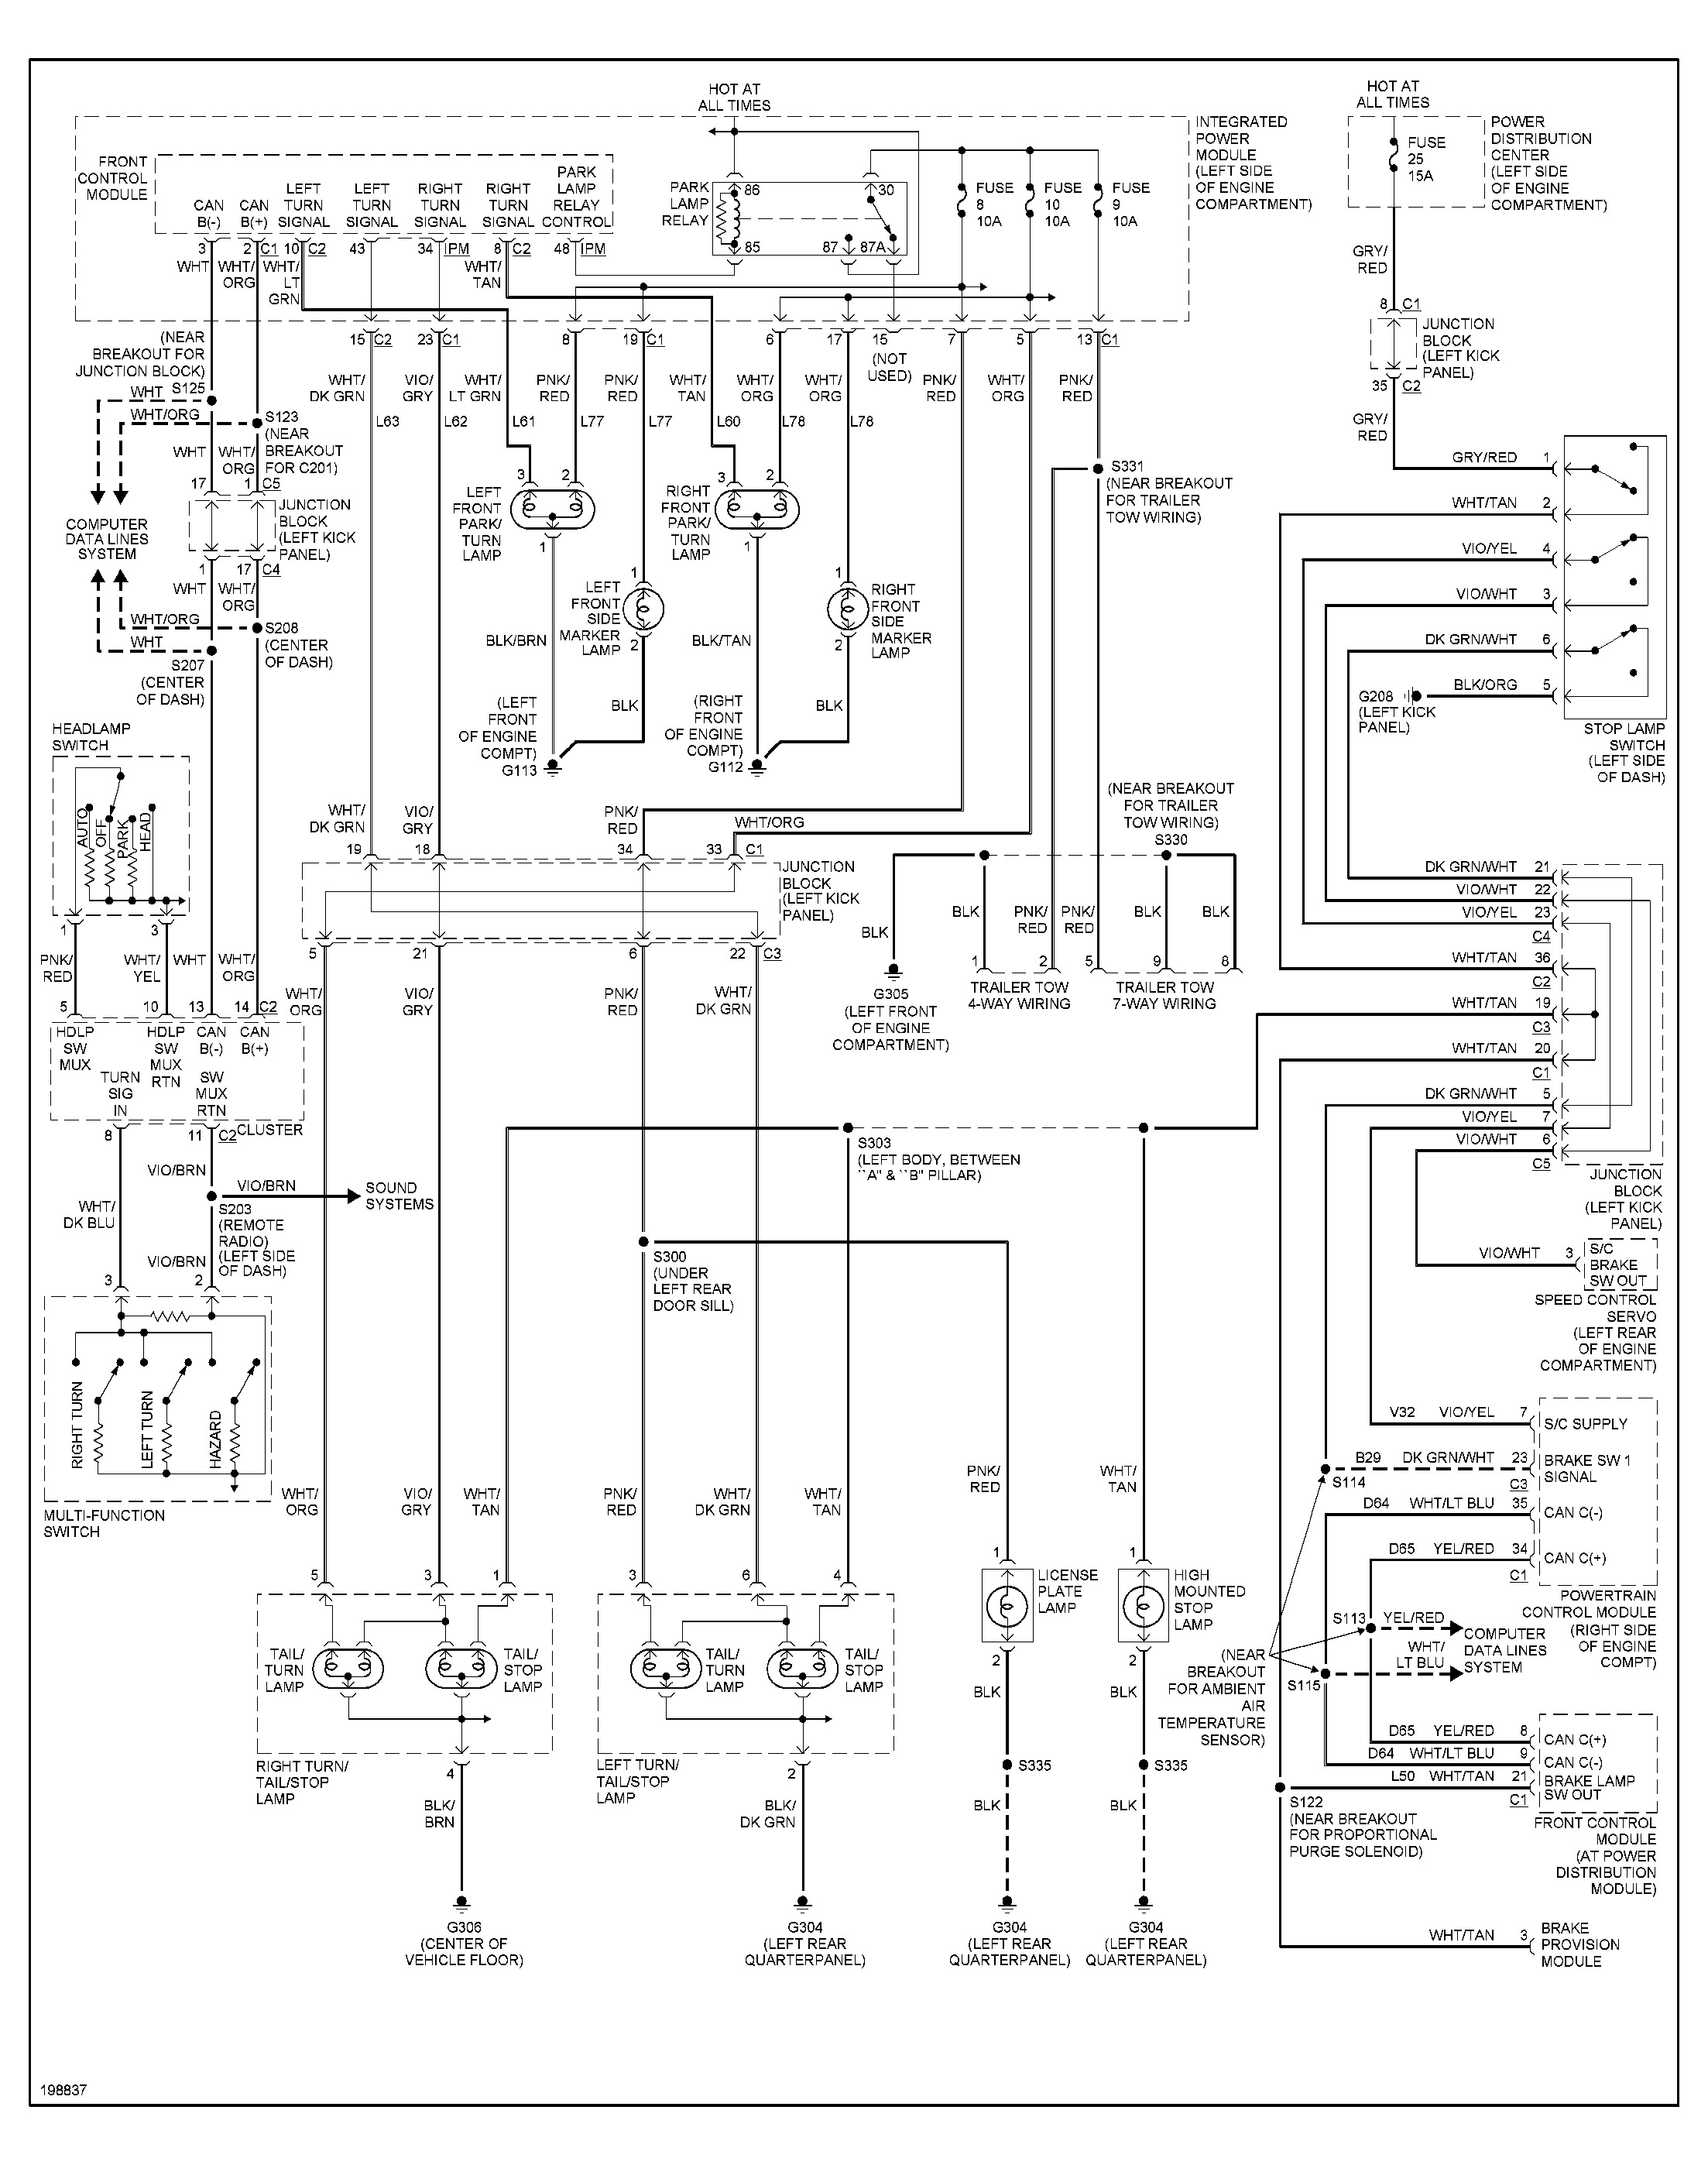 [DIAGRAM] 2000 Dodge Durango Radio Wiring Diagram FULL